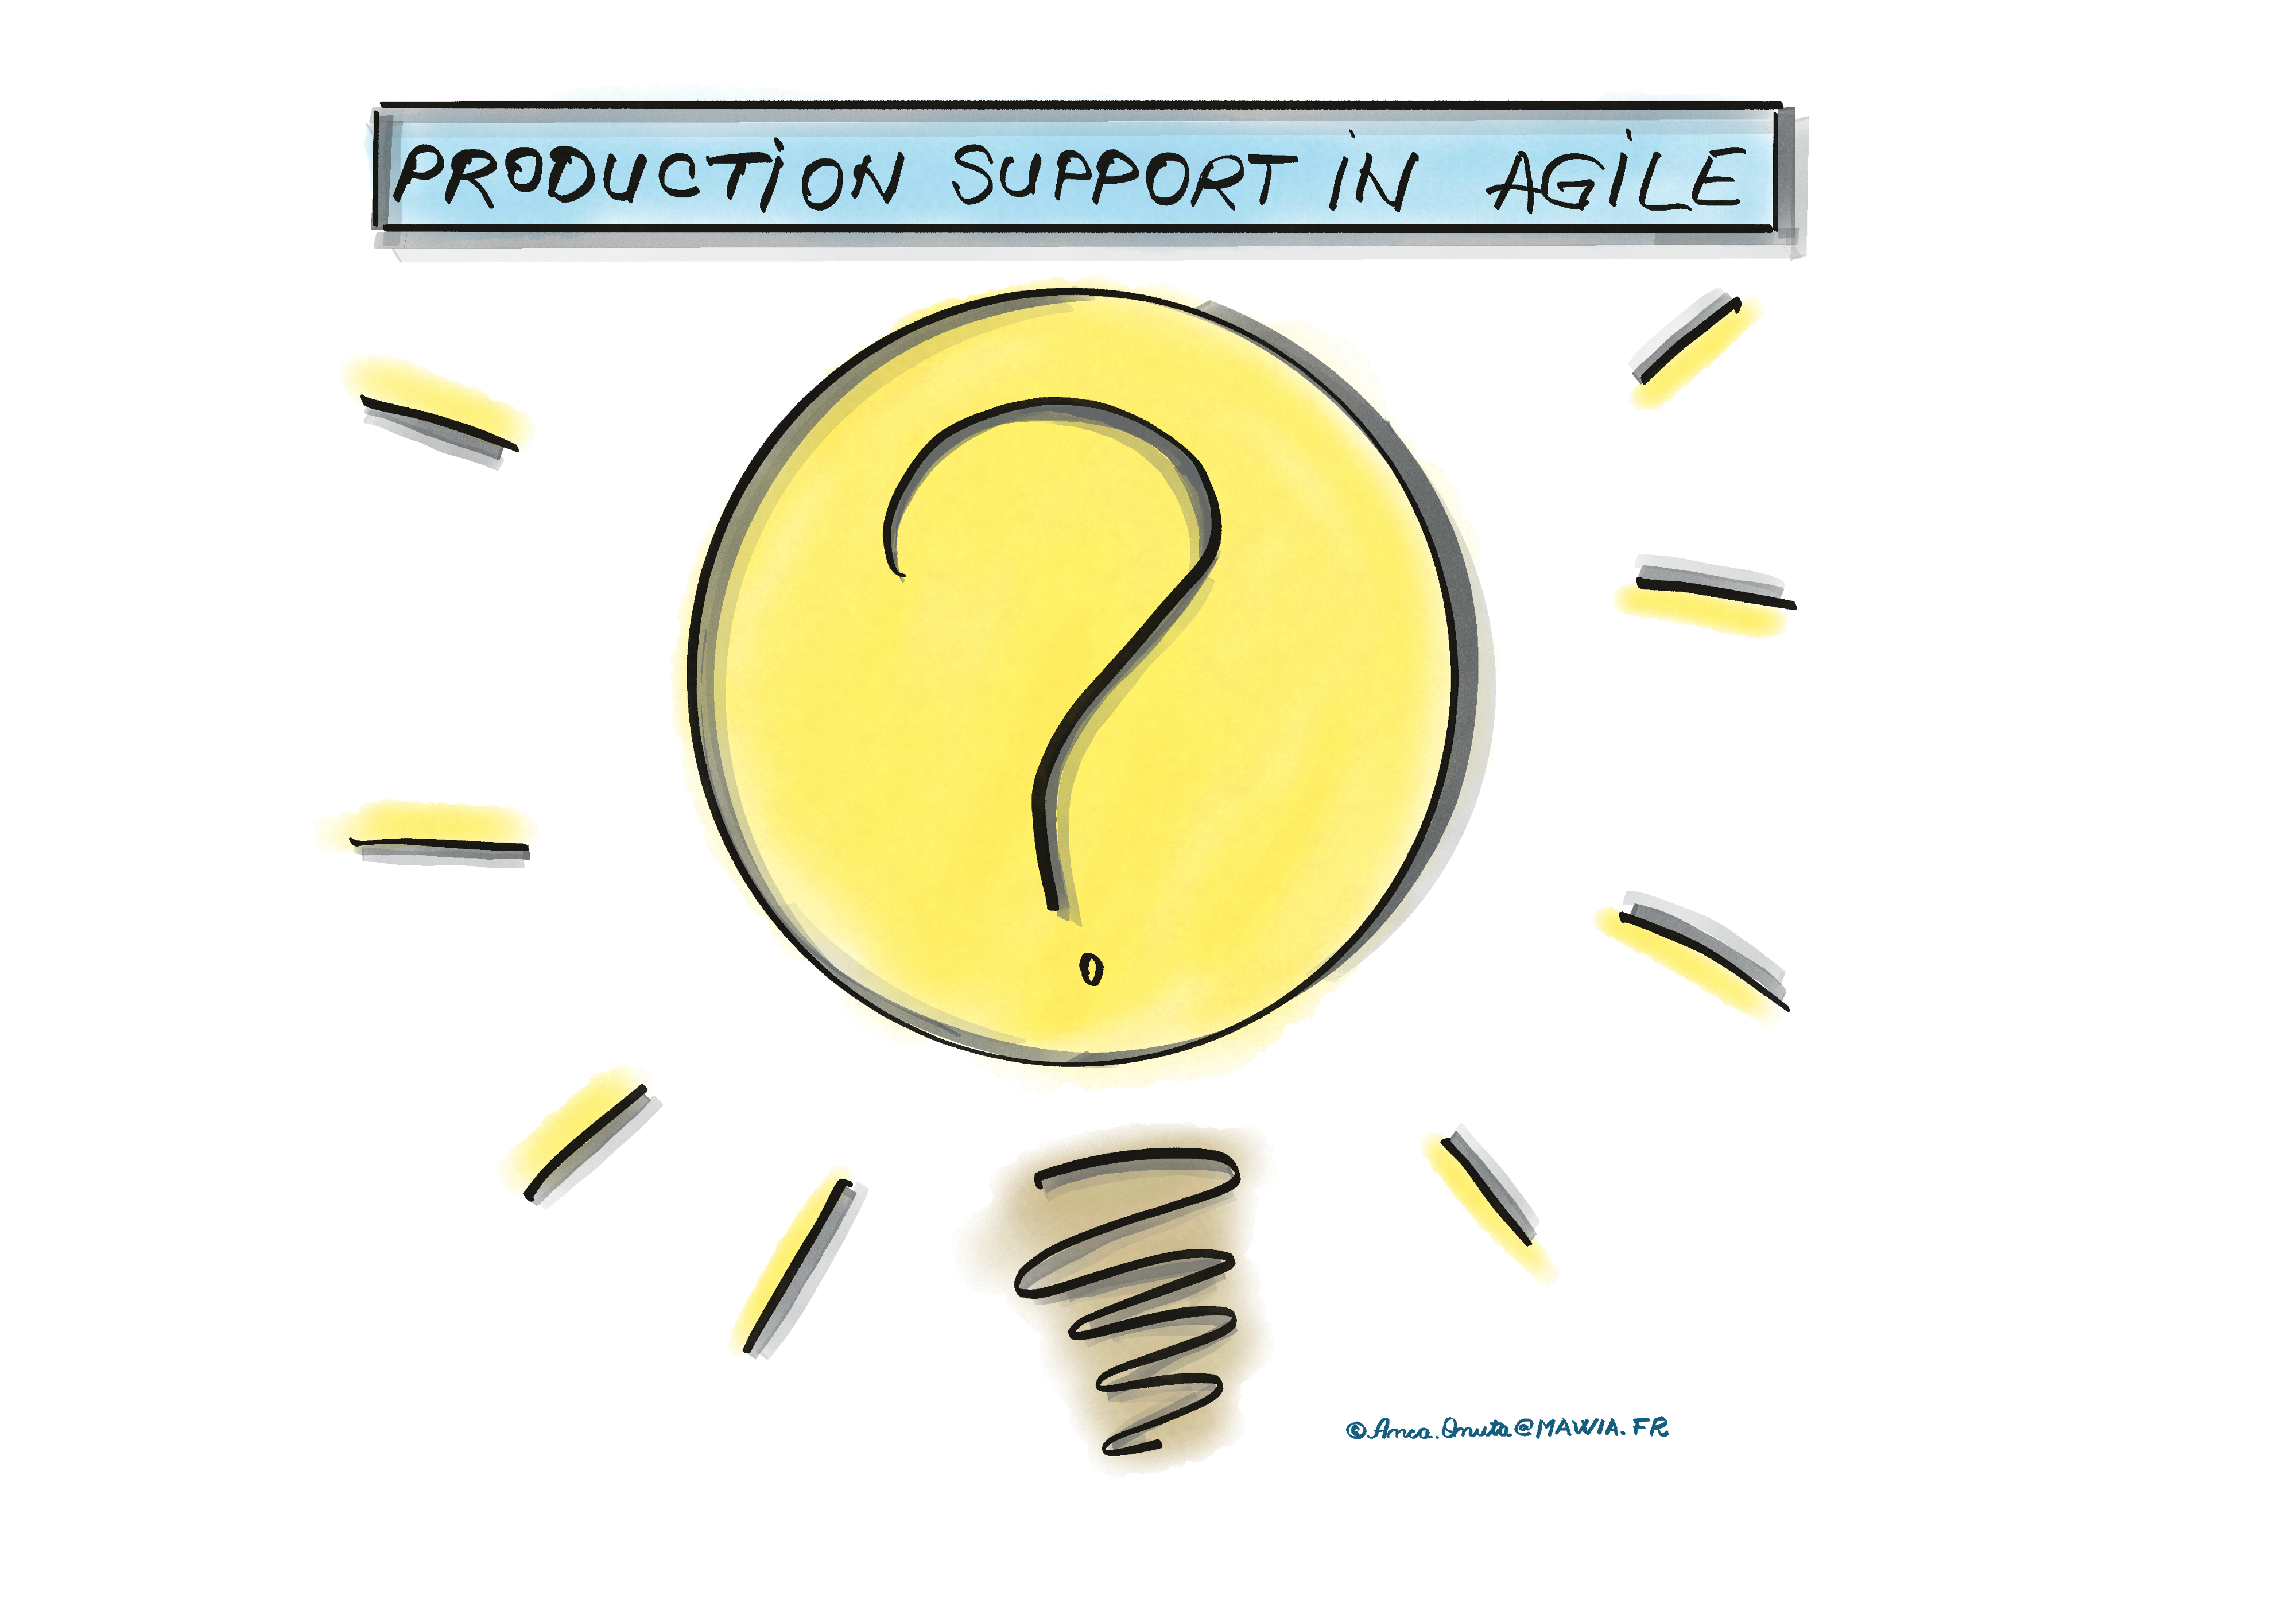 Idea Bulb on how to manage Production Support in Agile